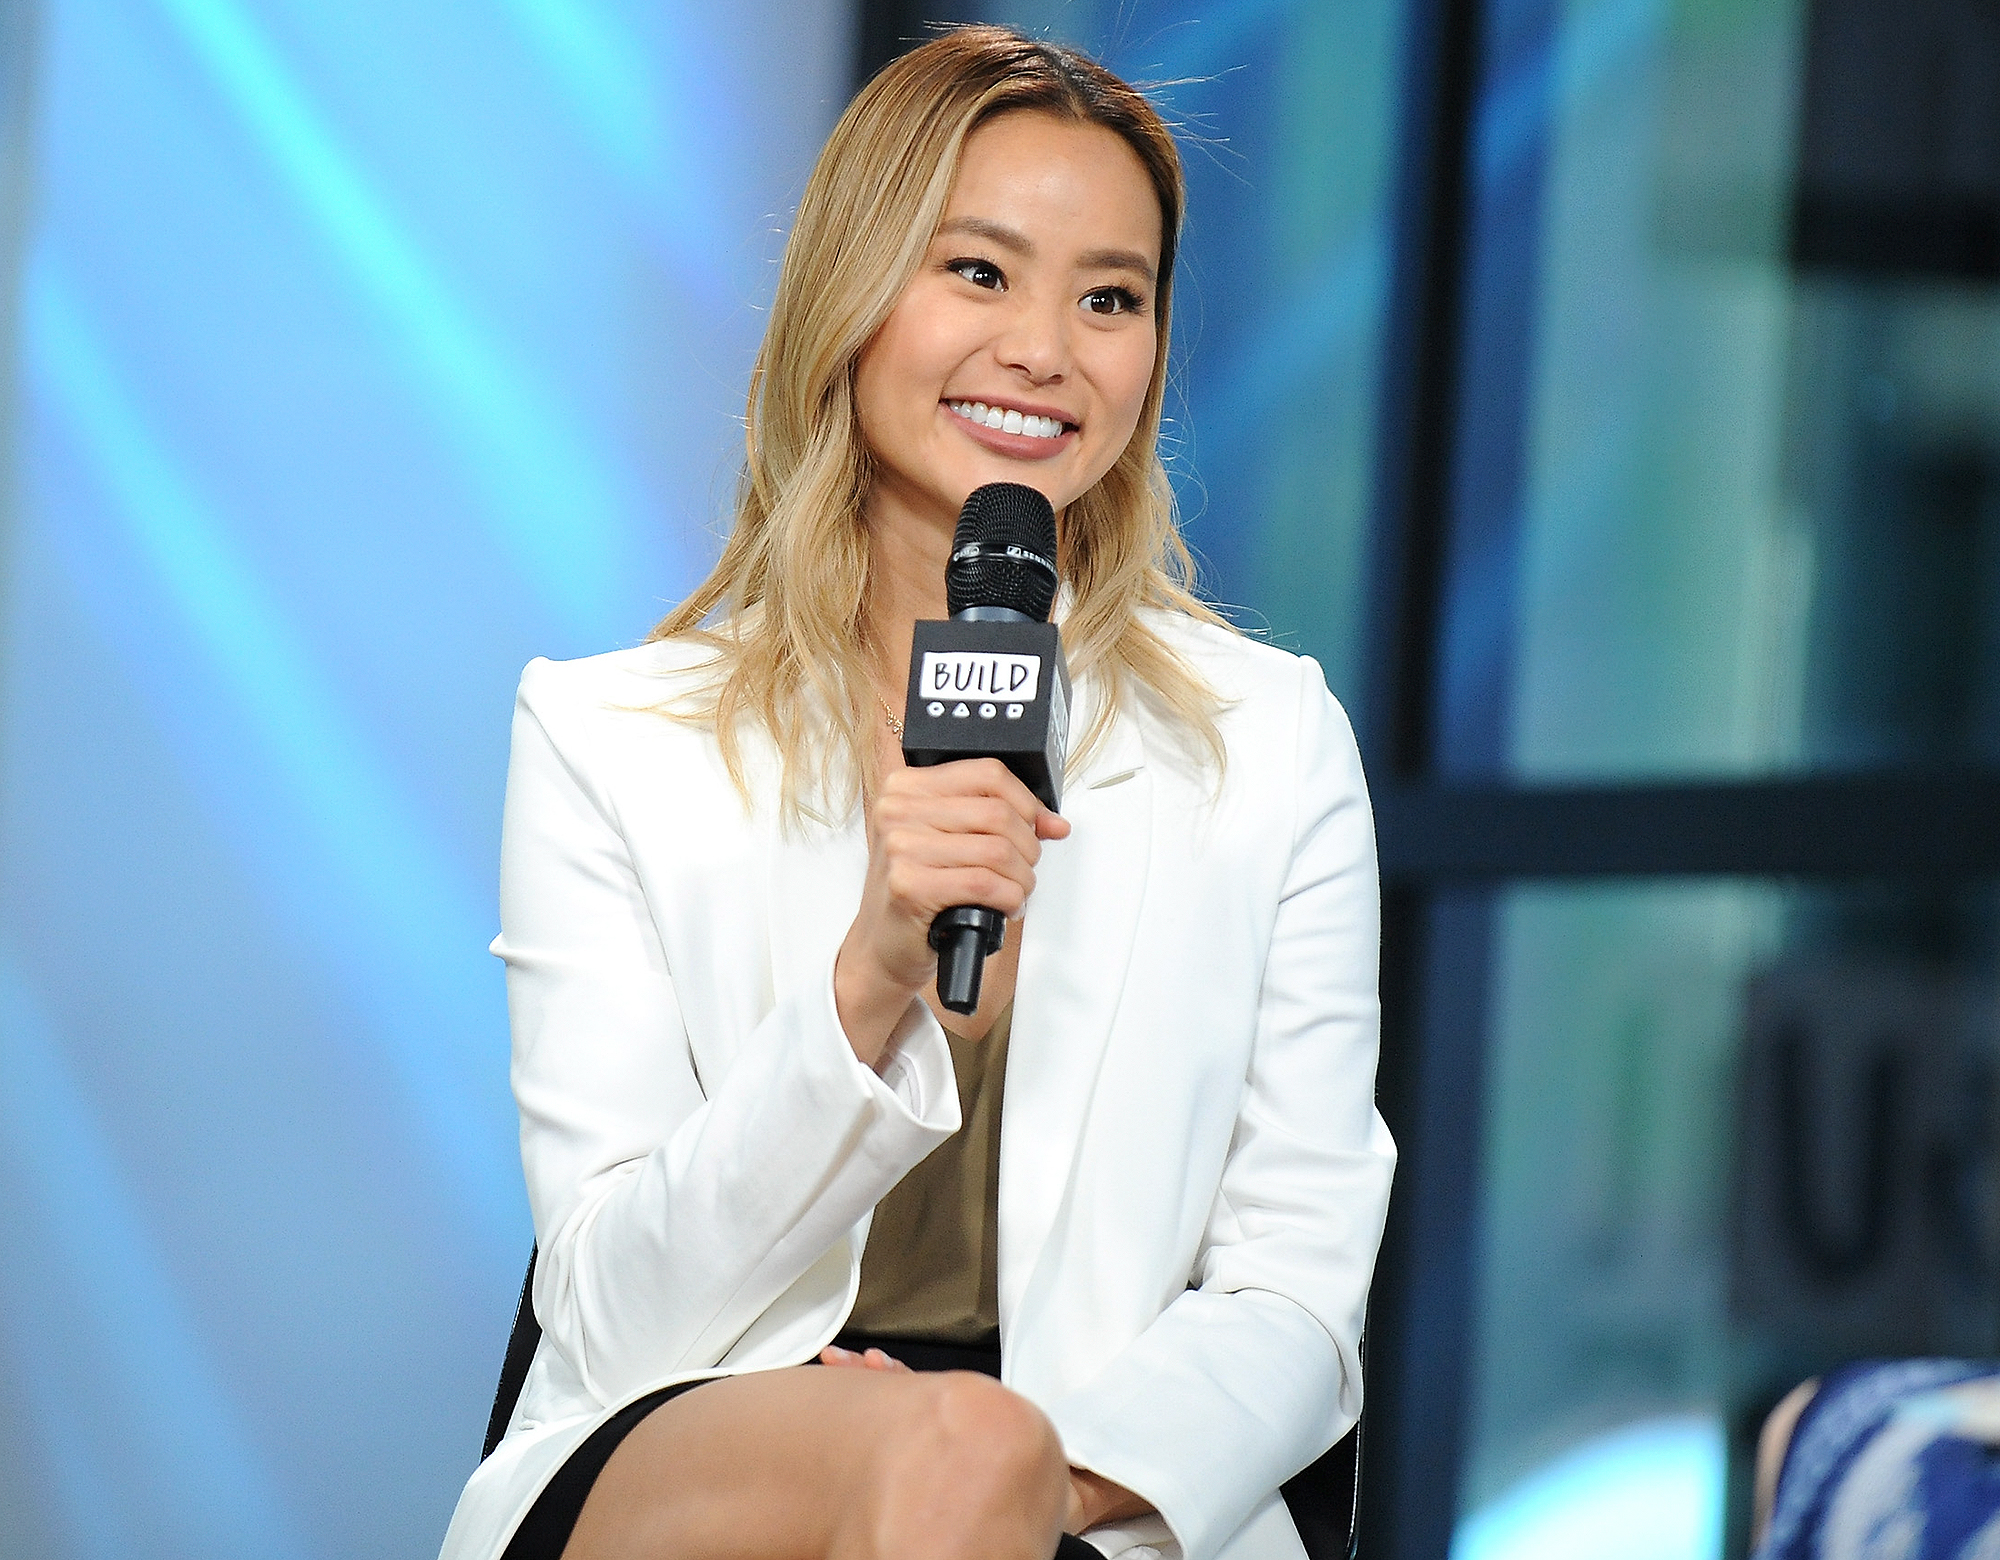 Build Presents Jamie Chung Discussing Her Future Projects